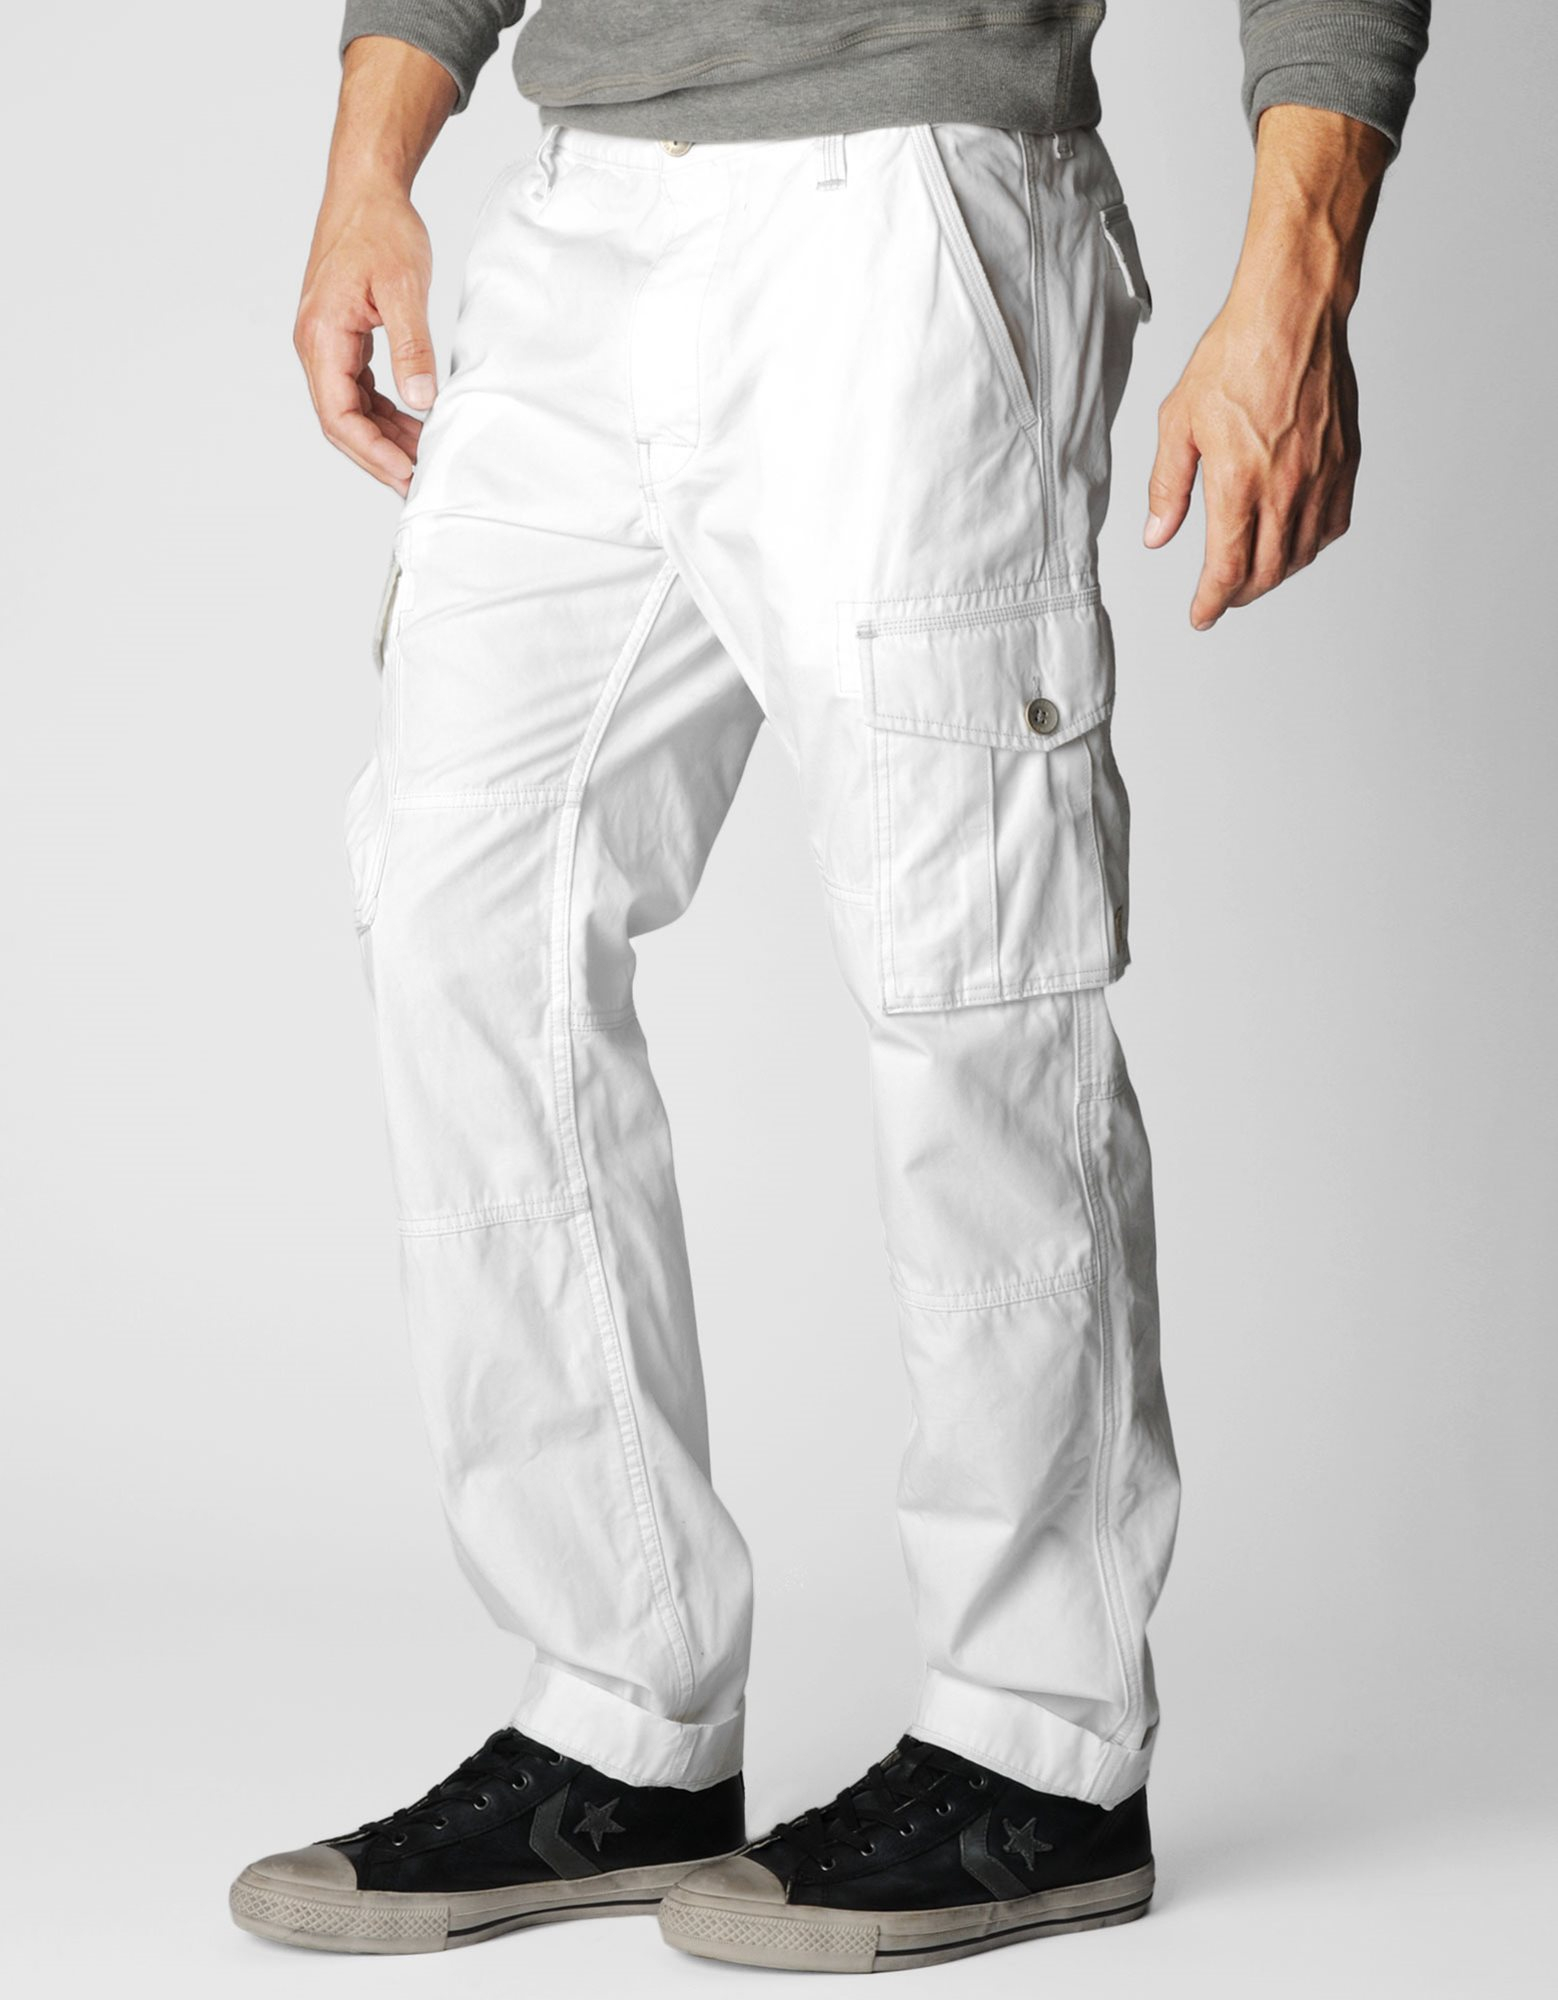 mens white cargo pants - Pi Pants